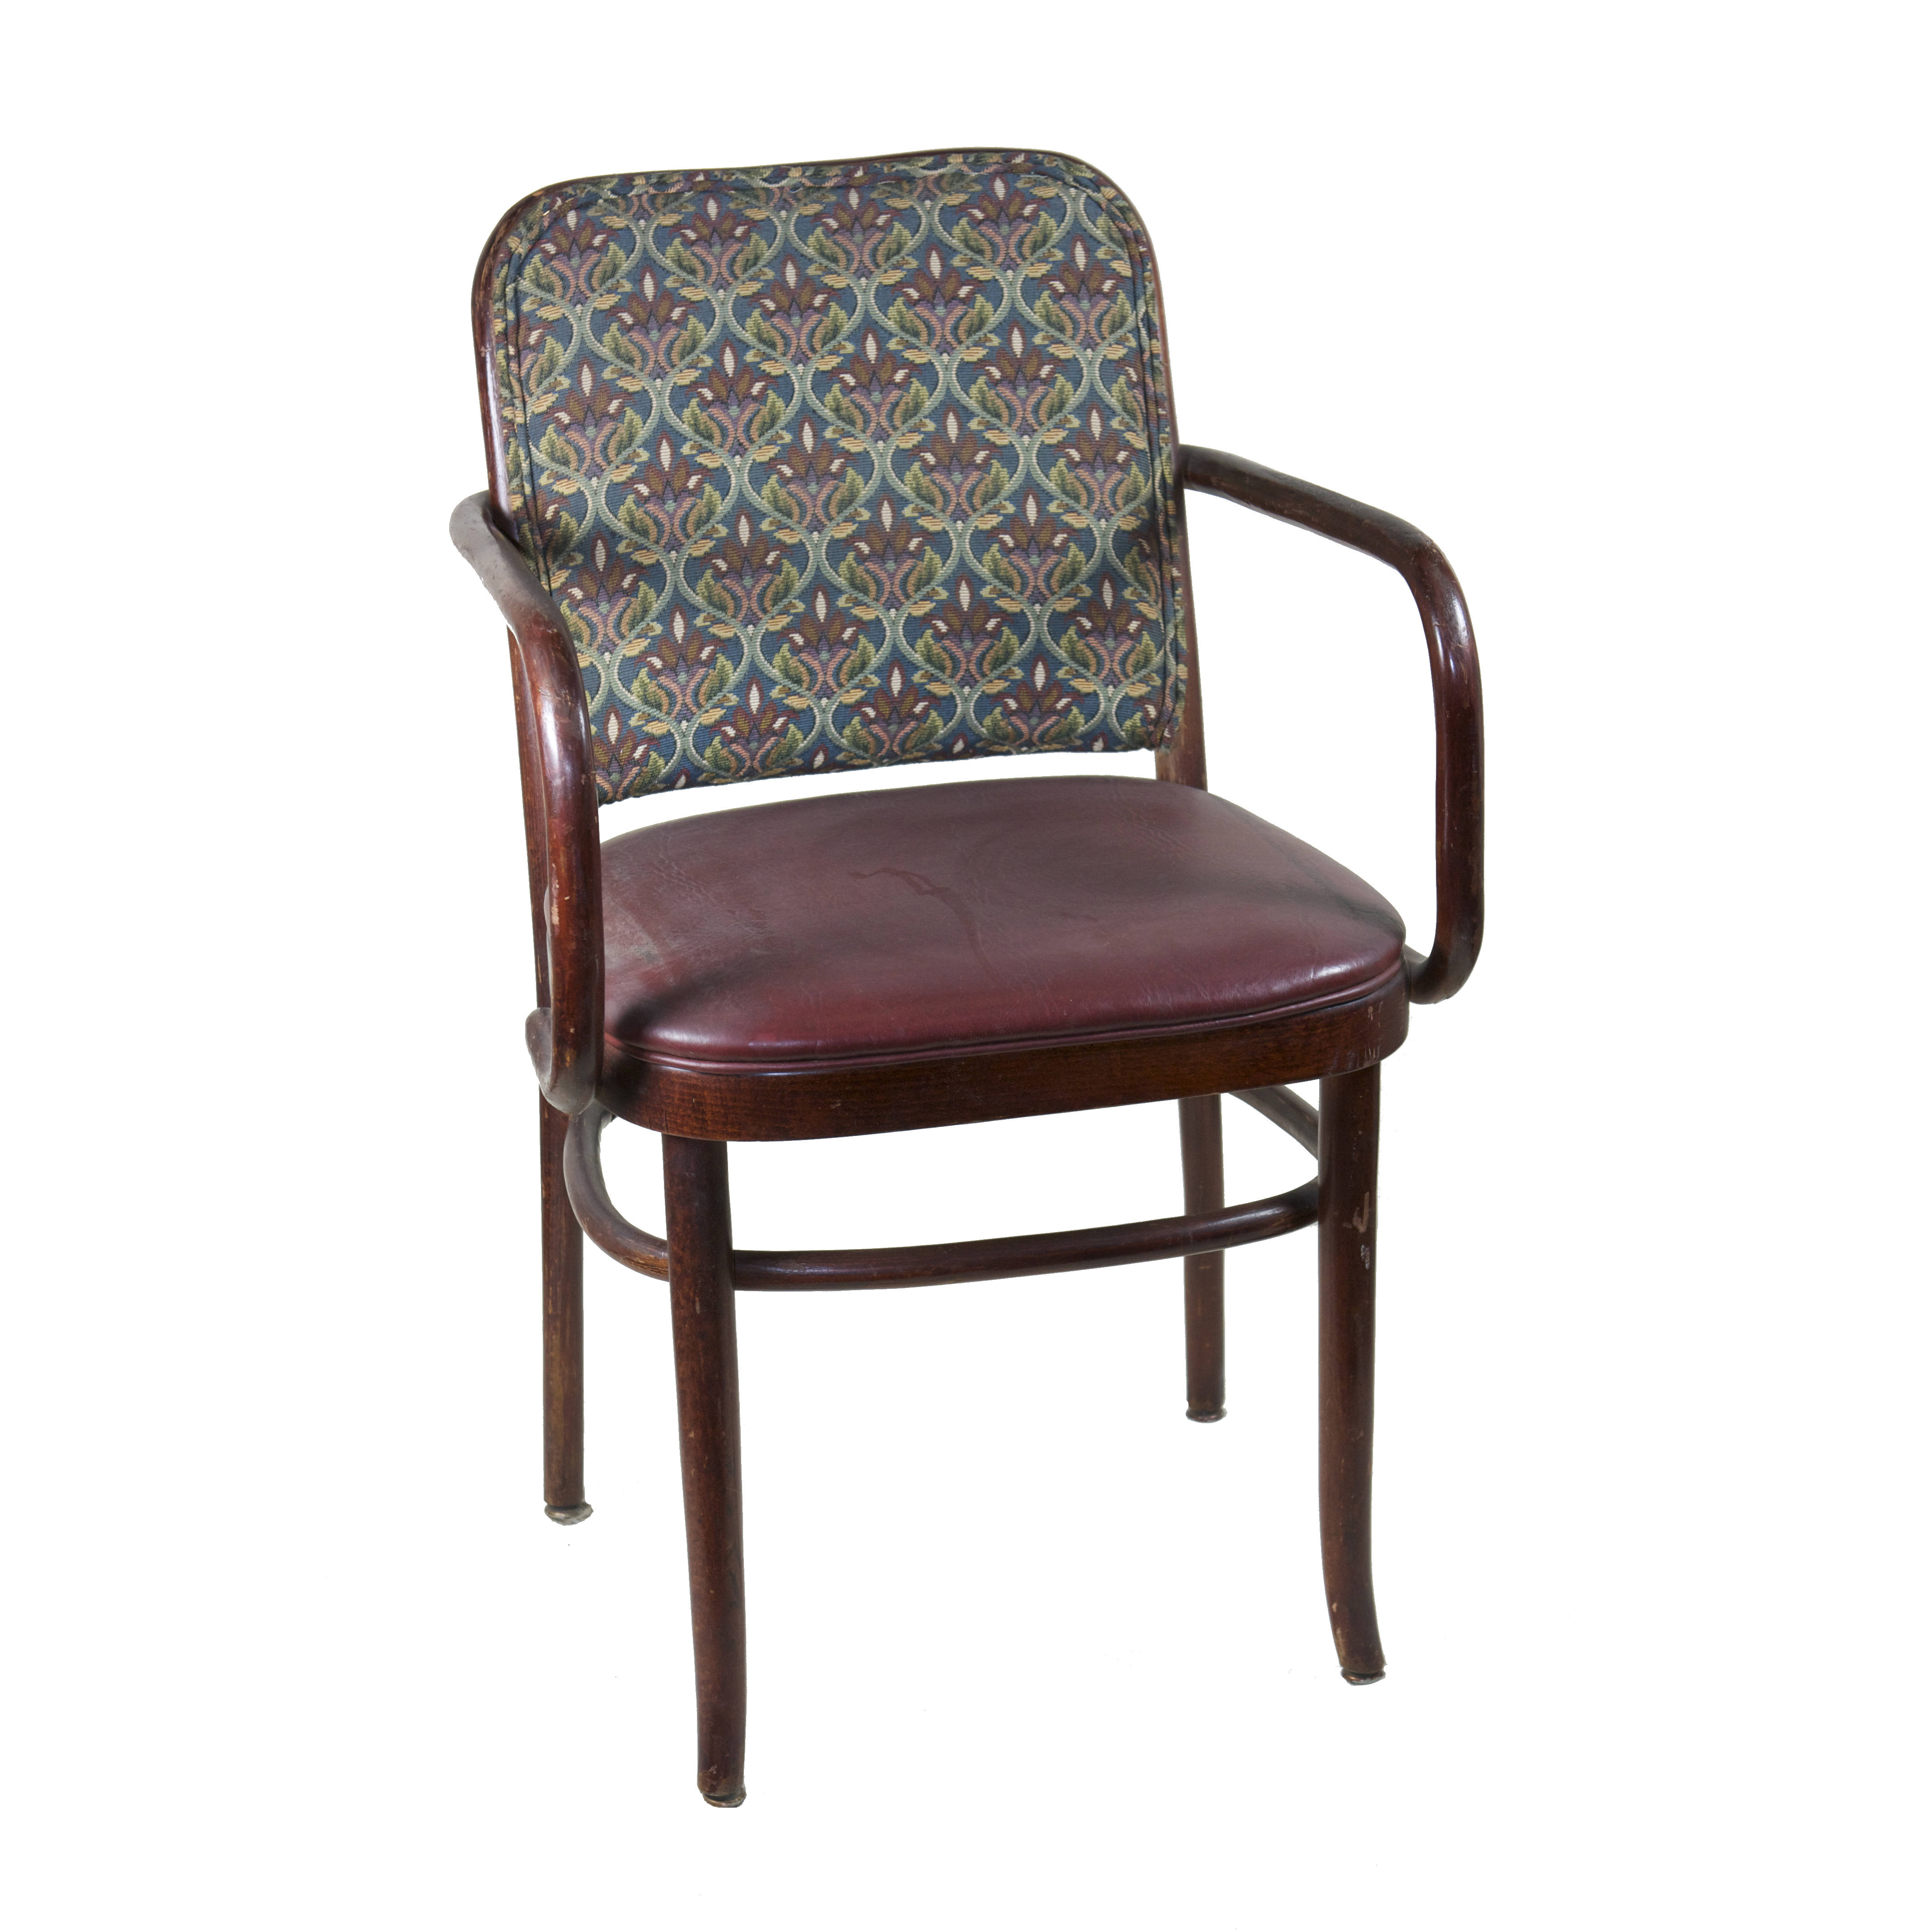 CHAIR VERANDA FABRIC BURGANDY Air Designs